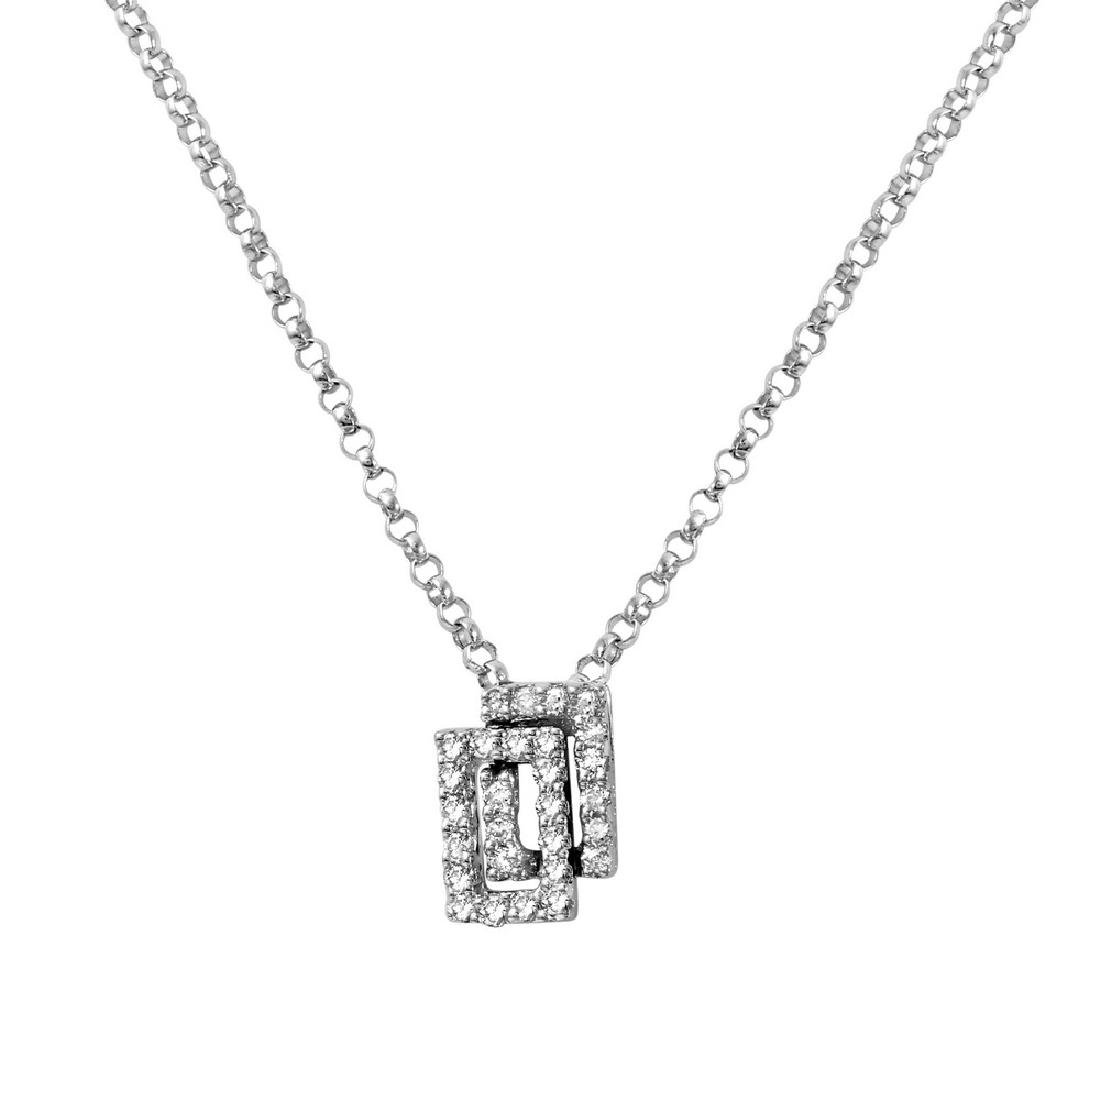 Genuine 0.13 TCW 14K White Gold Ladies Necklace